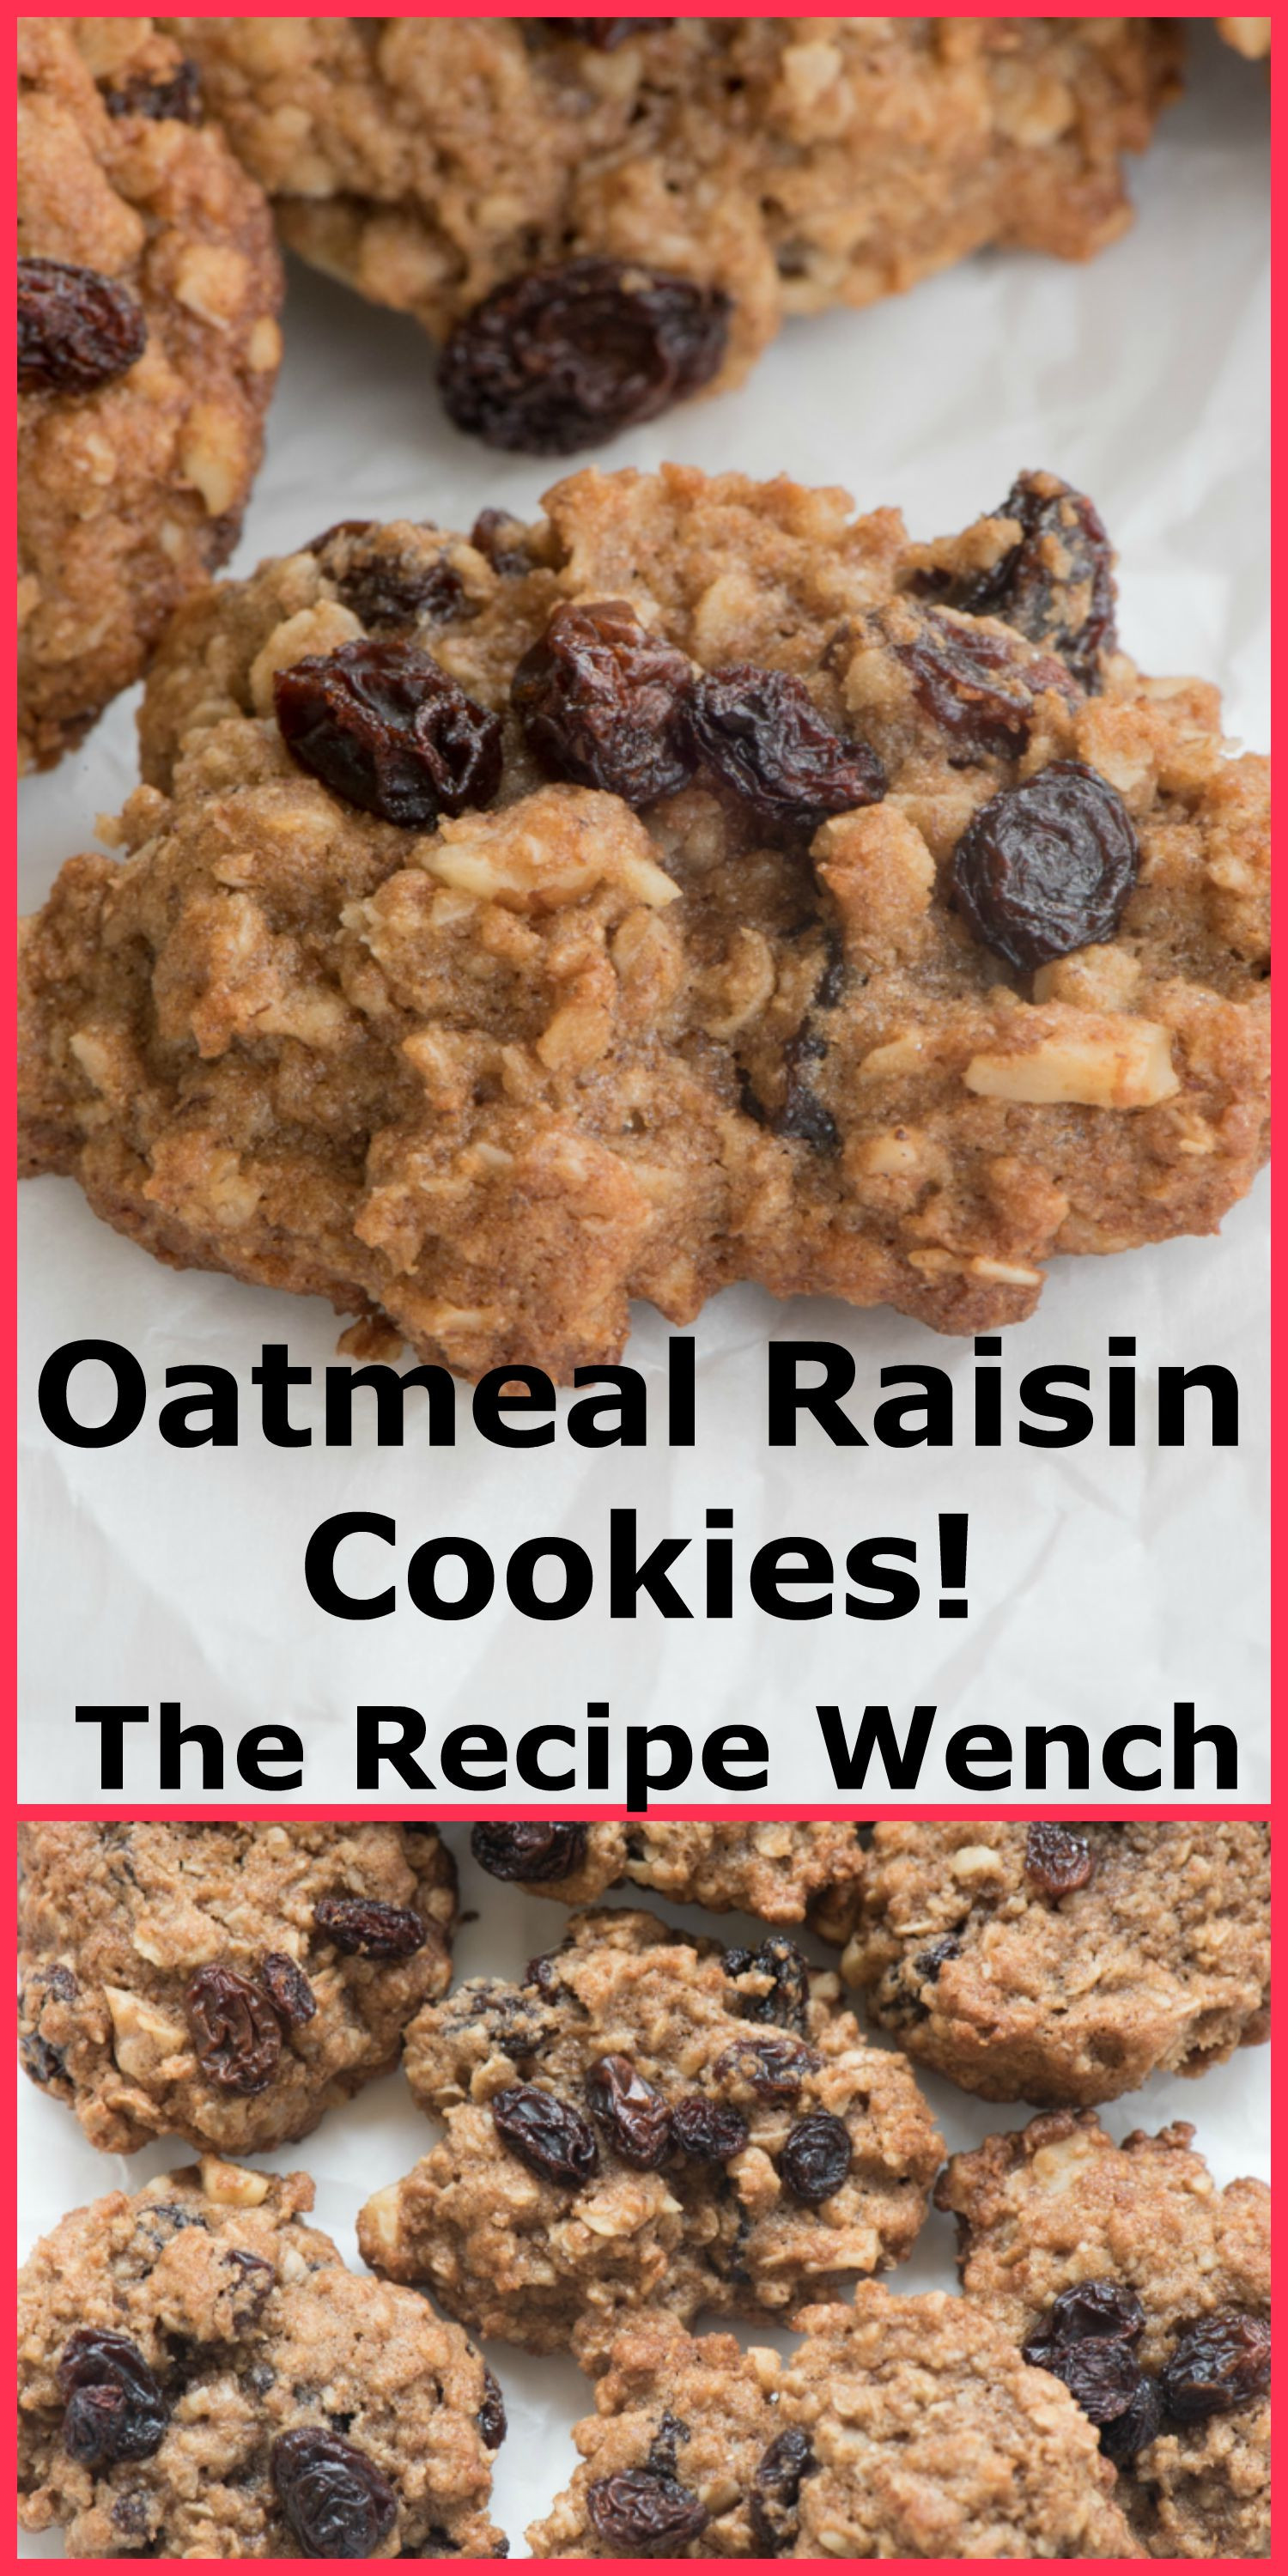 Recipe For Oatmeal Raisin Cookies  Oatmeal Raisin Cookies The Recipe Wench